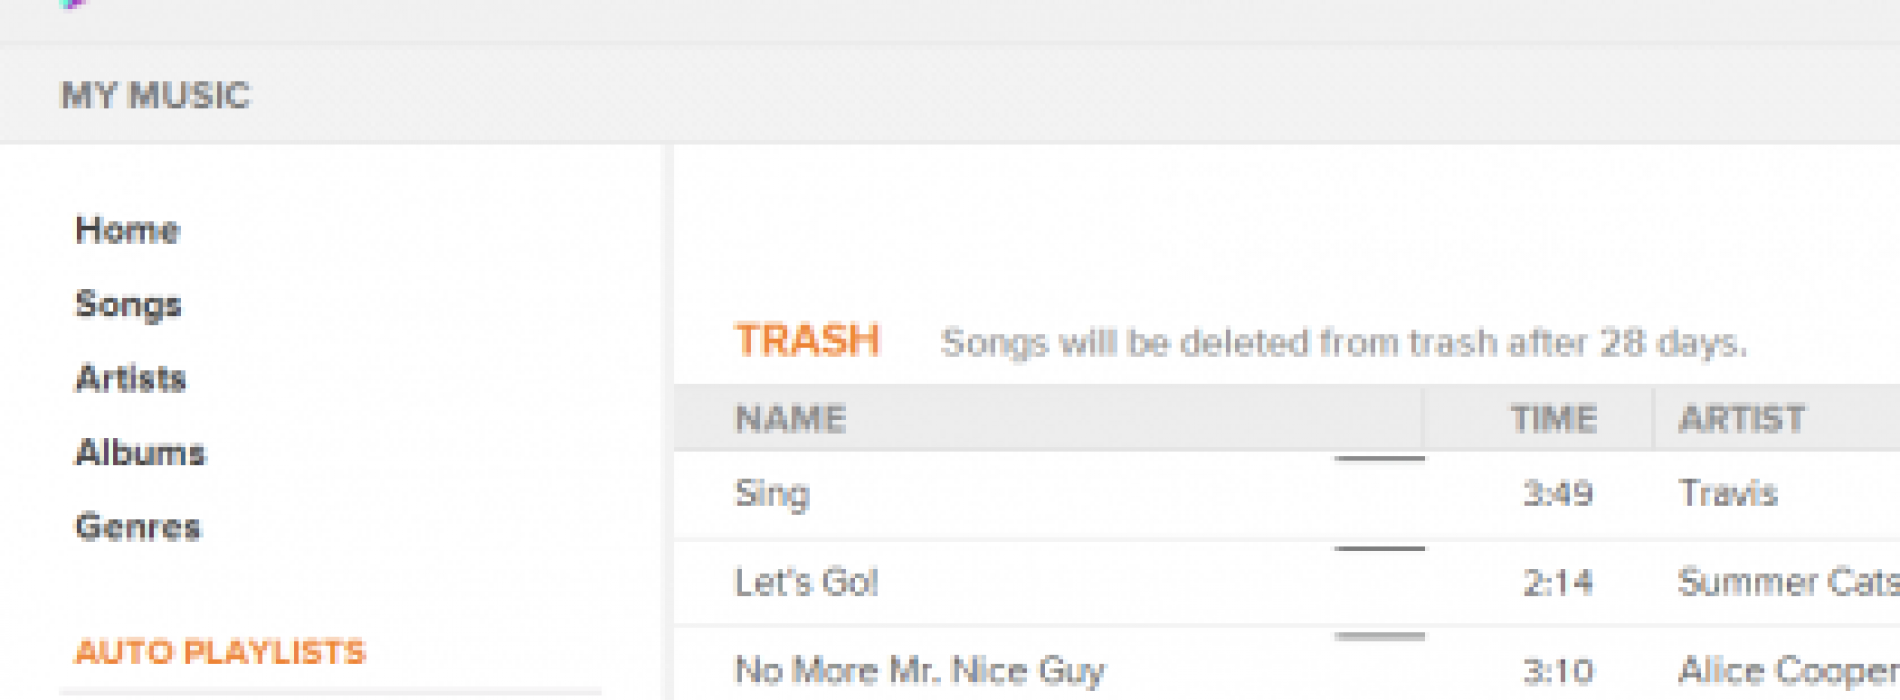 Google Music now keeps trashed tracks, allows you to undelete for 28 days